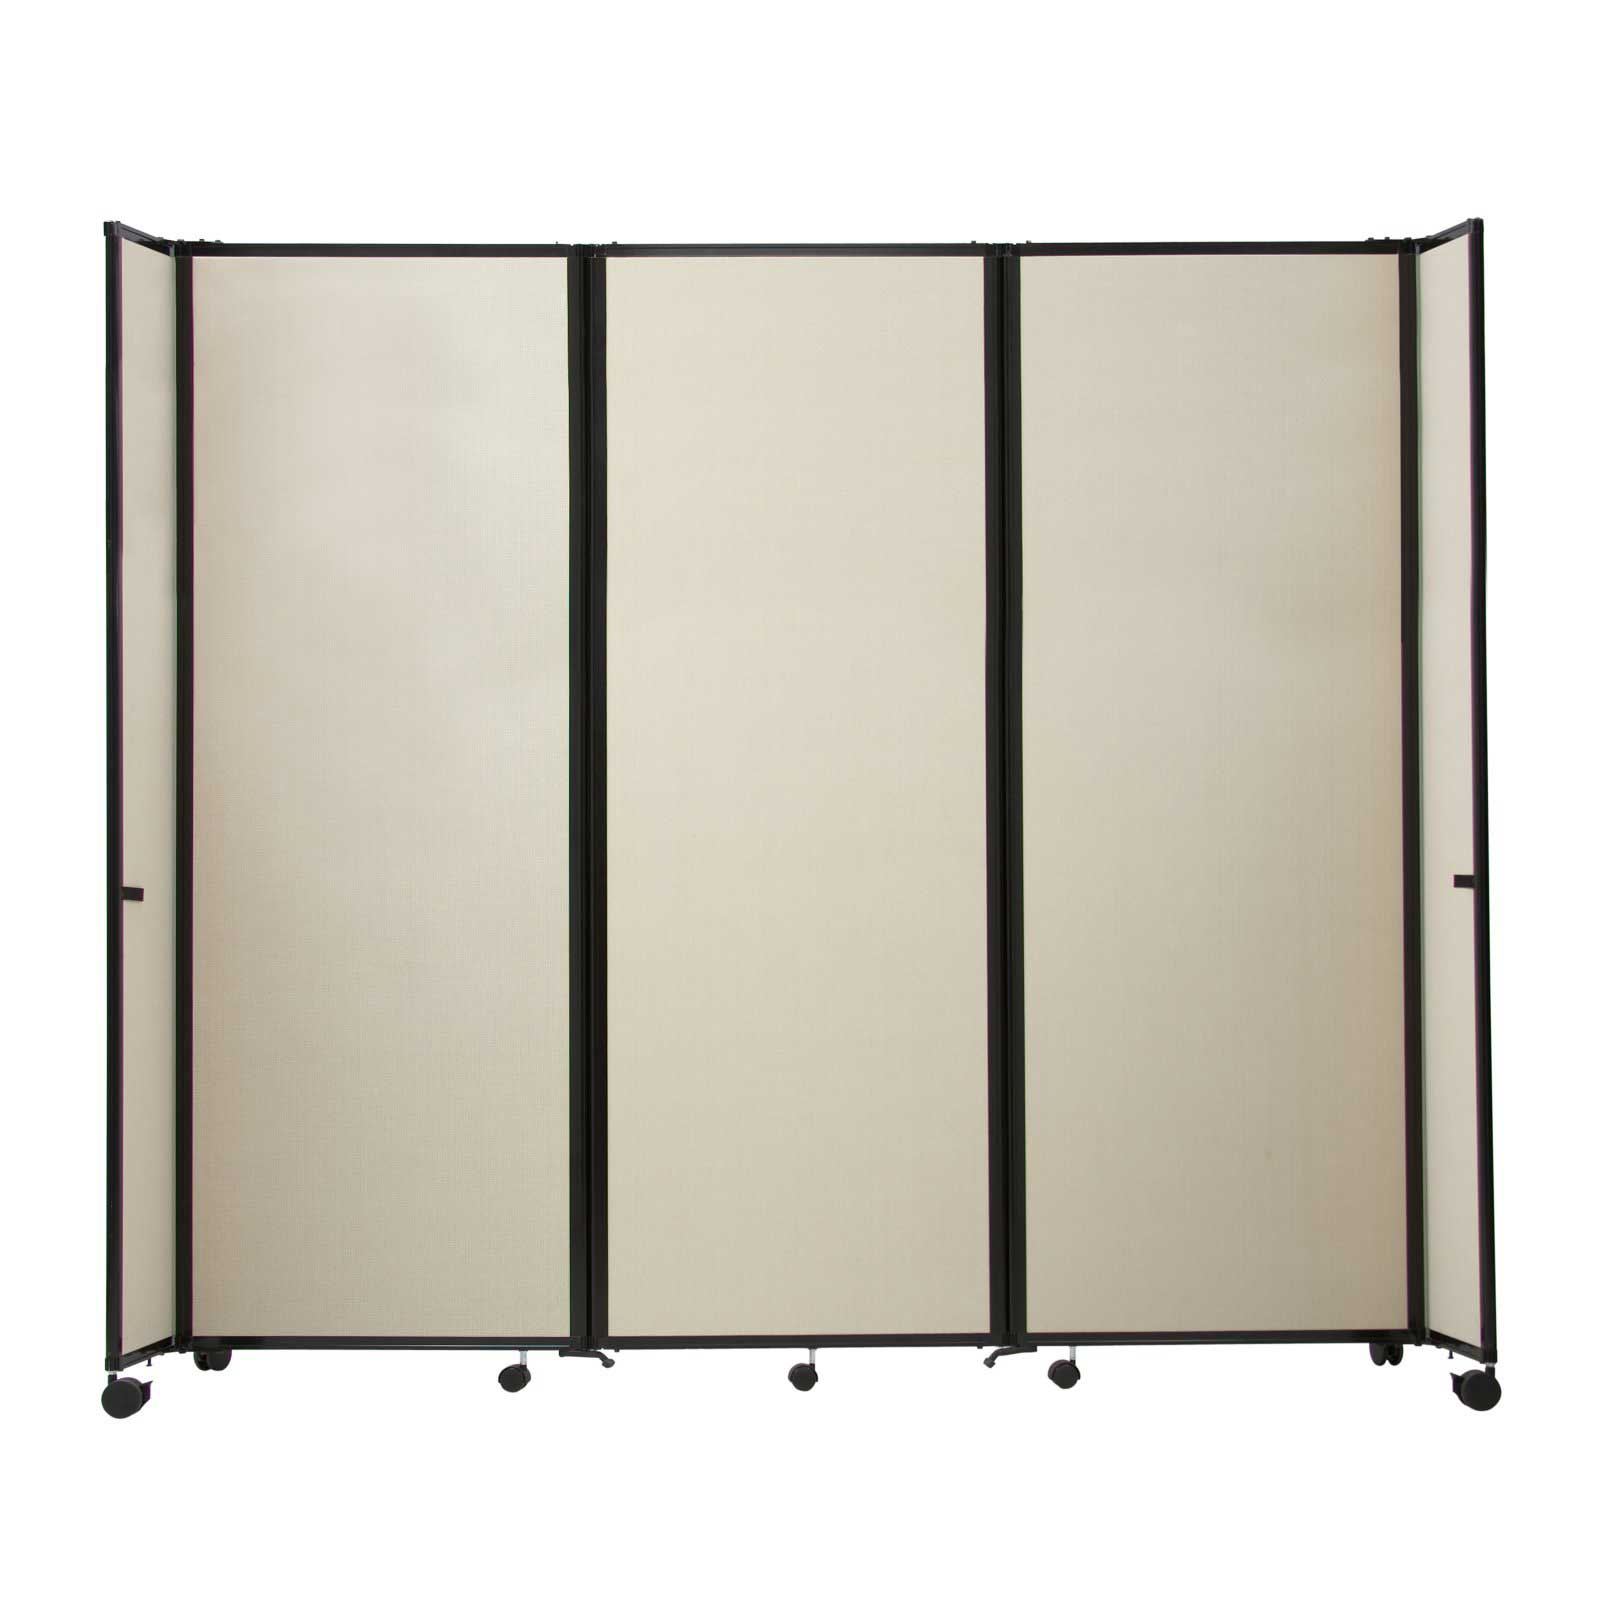 Divider walls on wheels images - Plastic room divider screen ...